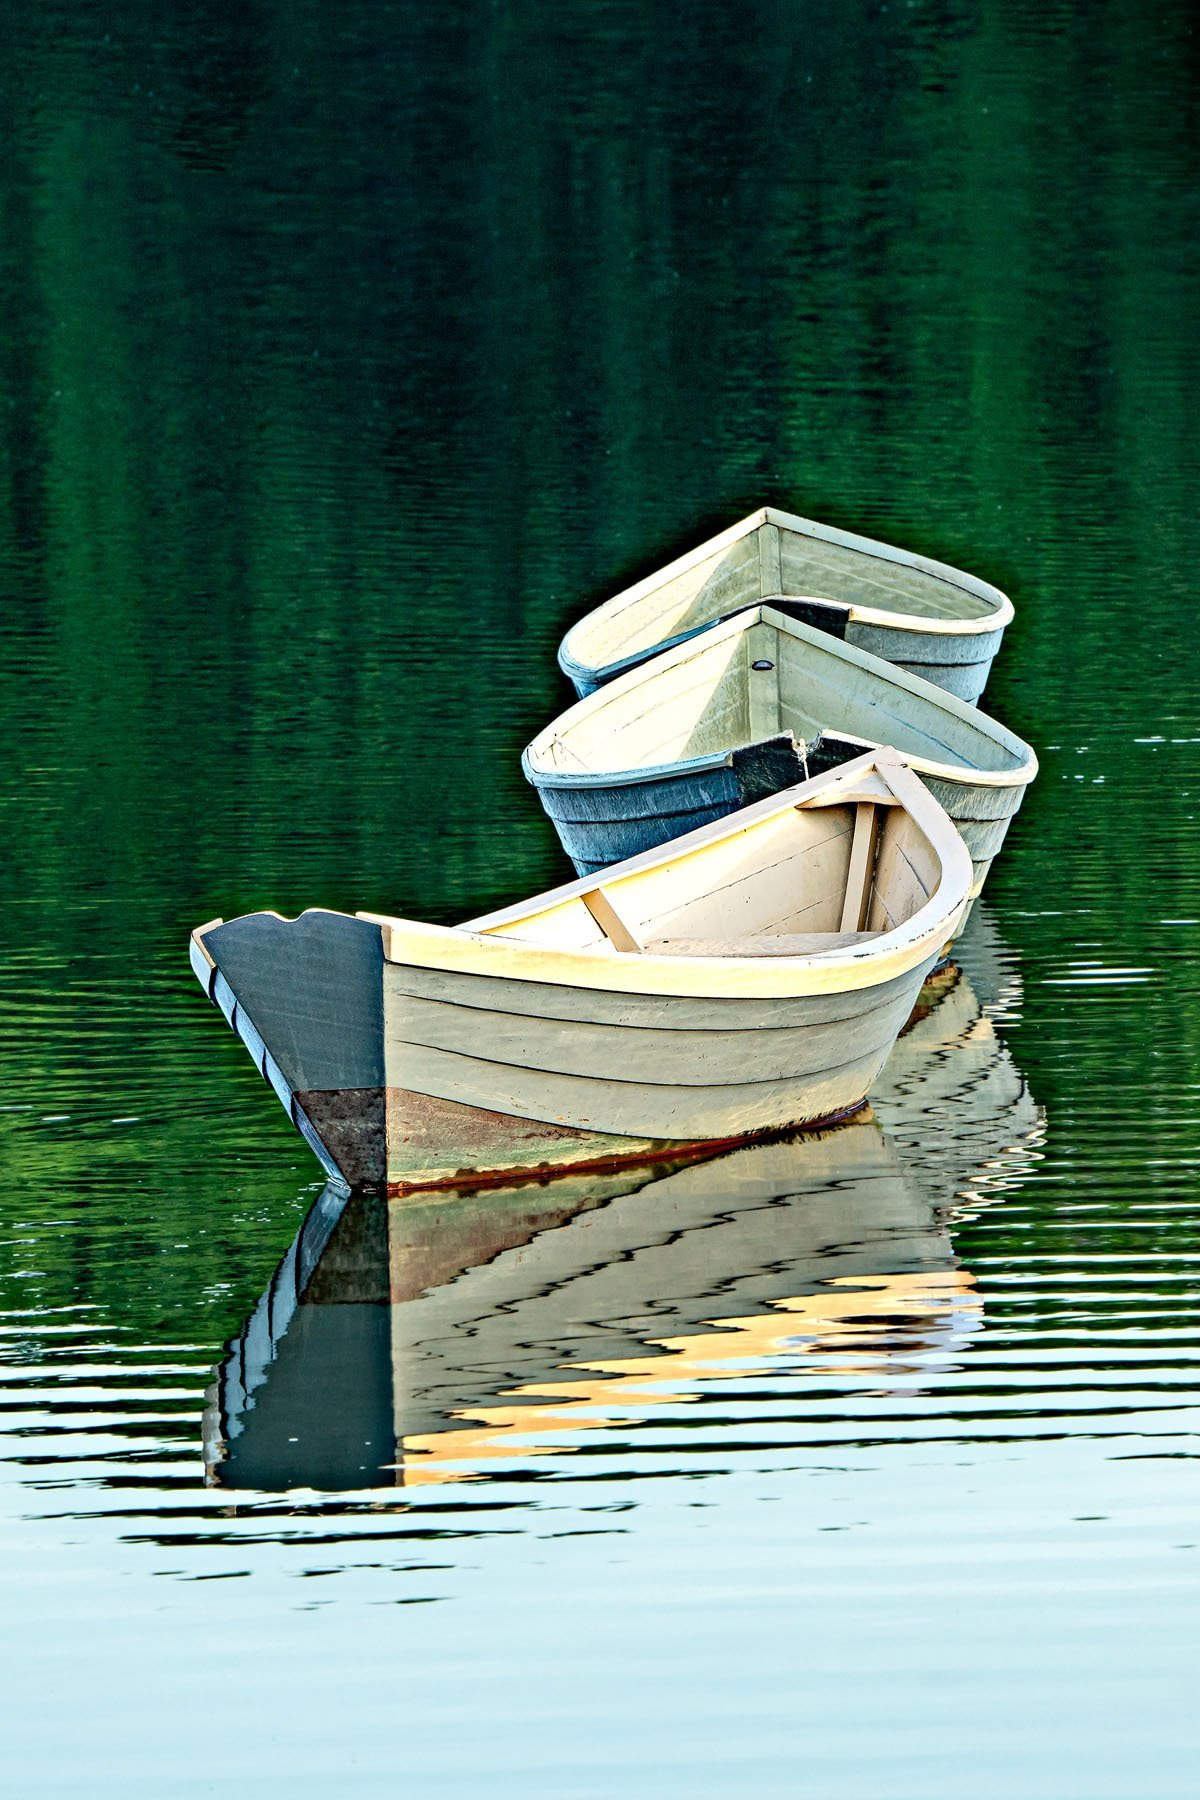 THREE DORIES - These three boats(dories) are anchored in the water in the town of Kennebunkport, Maine. Wind, tide and activity cause them to move constantly. They appear to dance in the water. Light and water level change the show throughout the day. They have become a town icon. This is one of many photos I took while there.